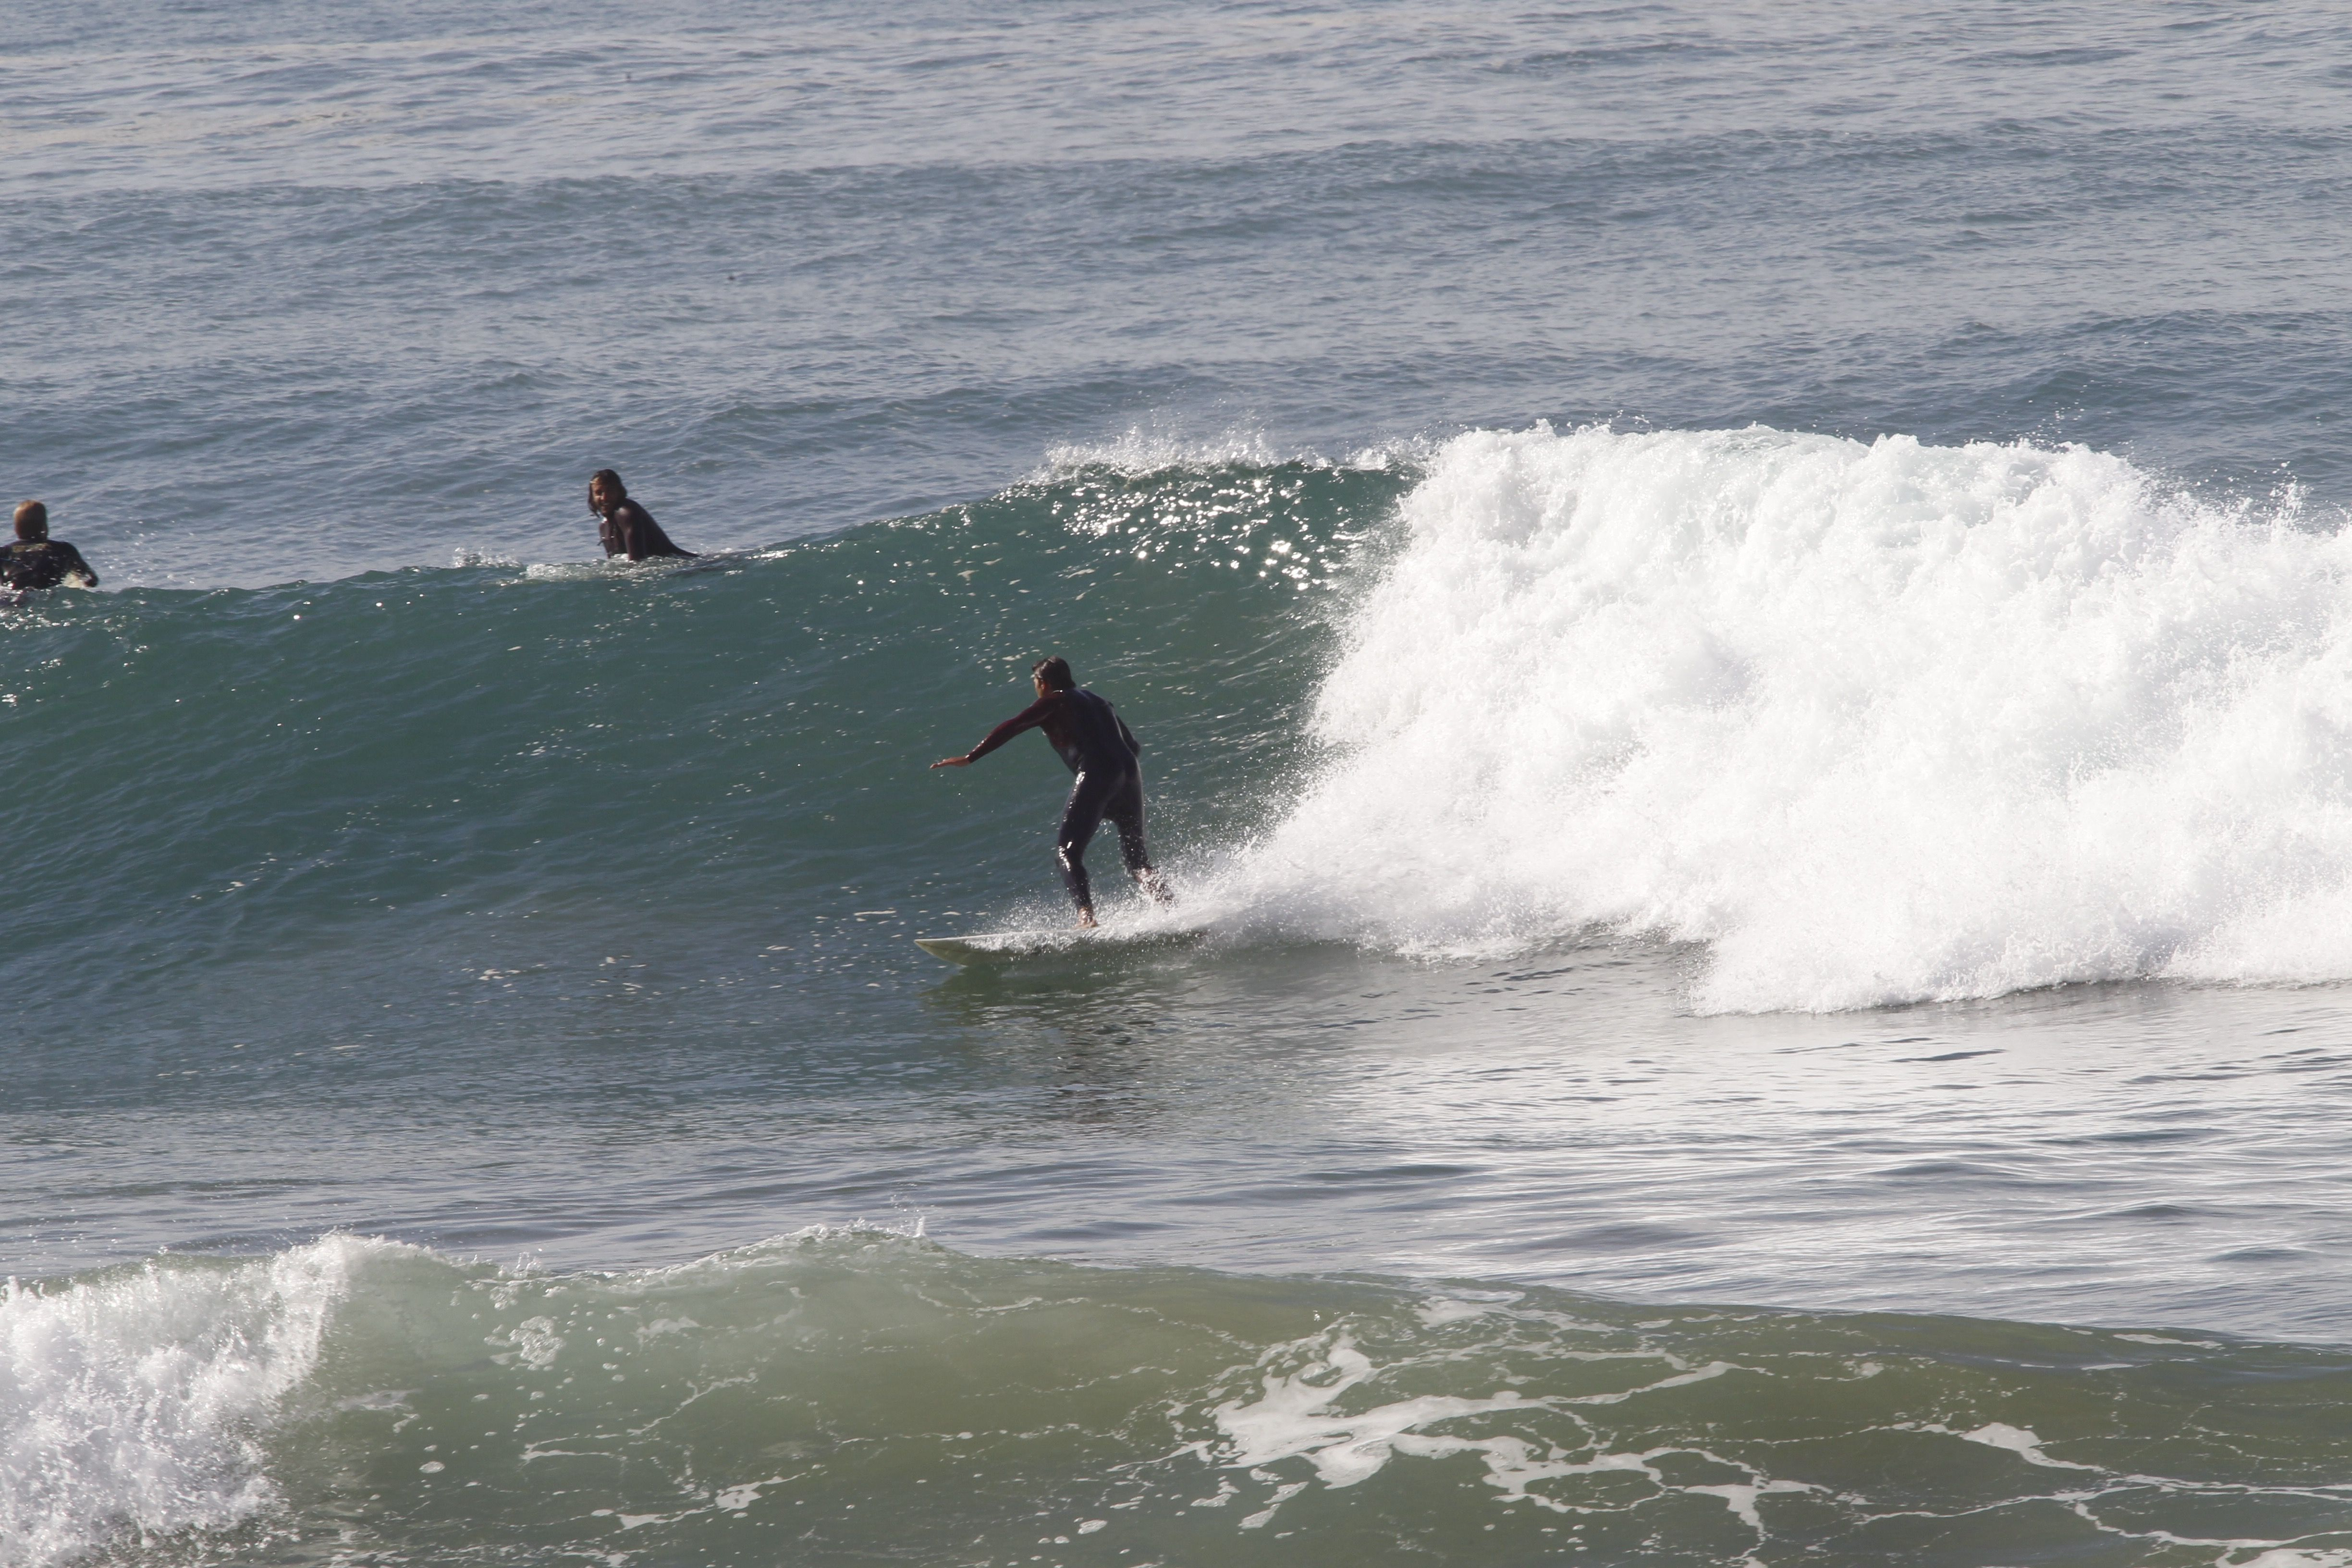 Super stoked! What another great session, with only 3 other guys out! Super vibe in the water. #surfMorocco